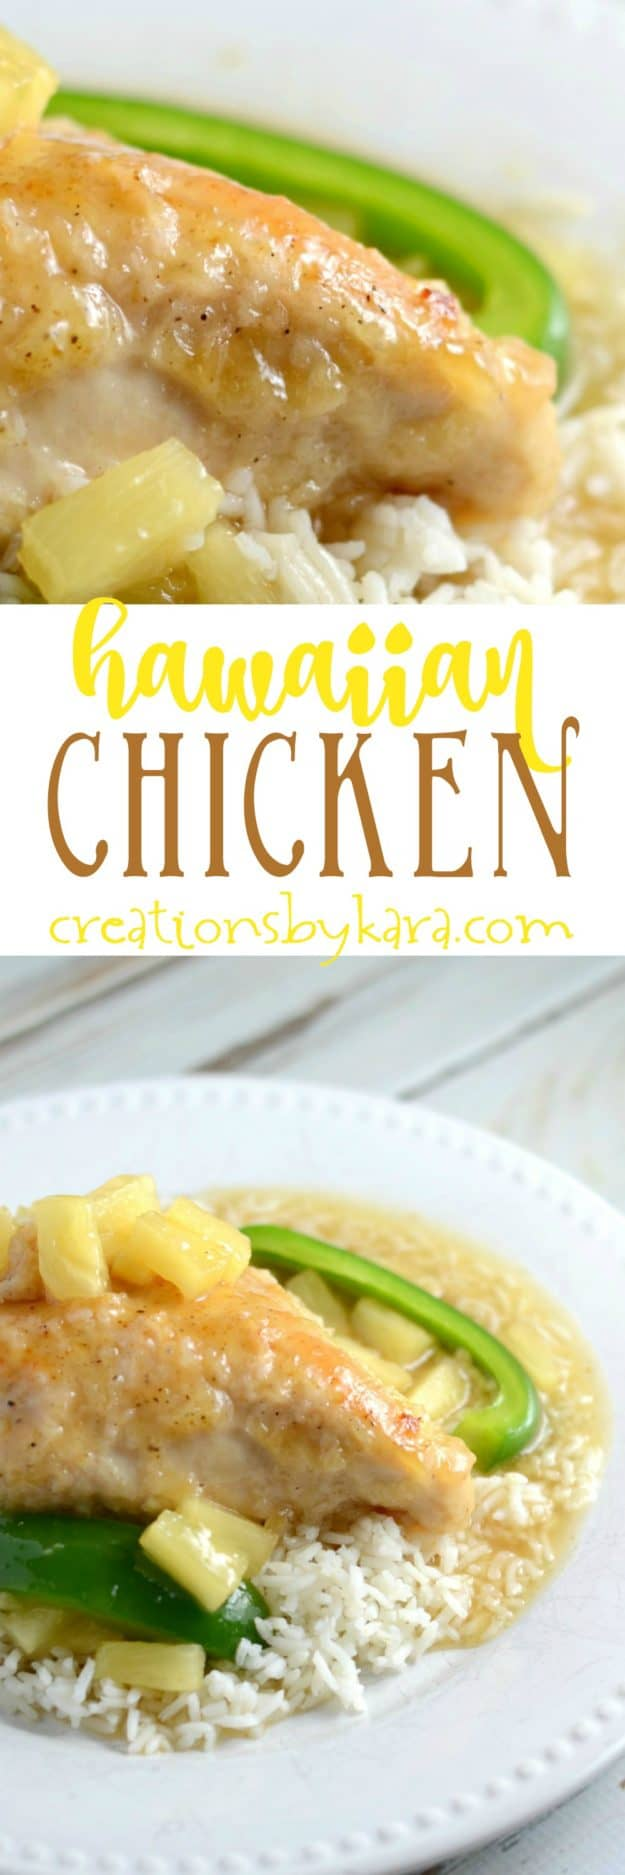 Recipe for Hawaiian Chicken. This sweet and sour chicken is easy and so tasty. Baked, not fried, it is healthier than other sweet and sour chicken recipes.